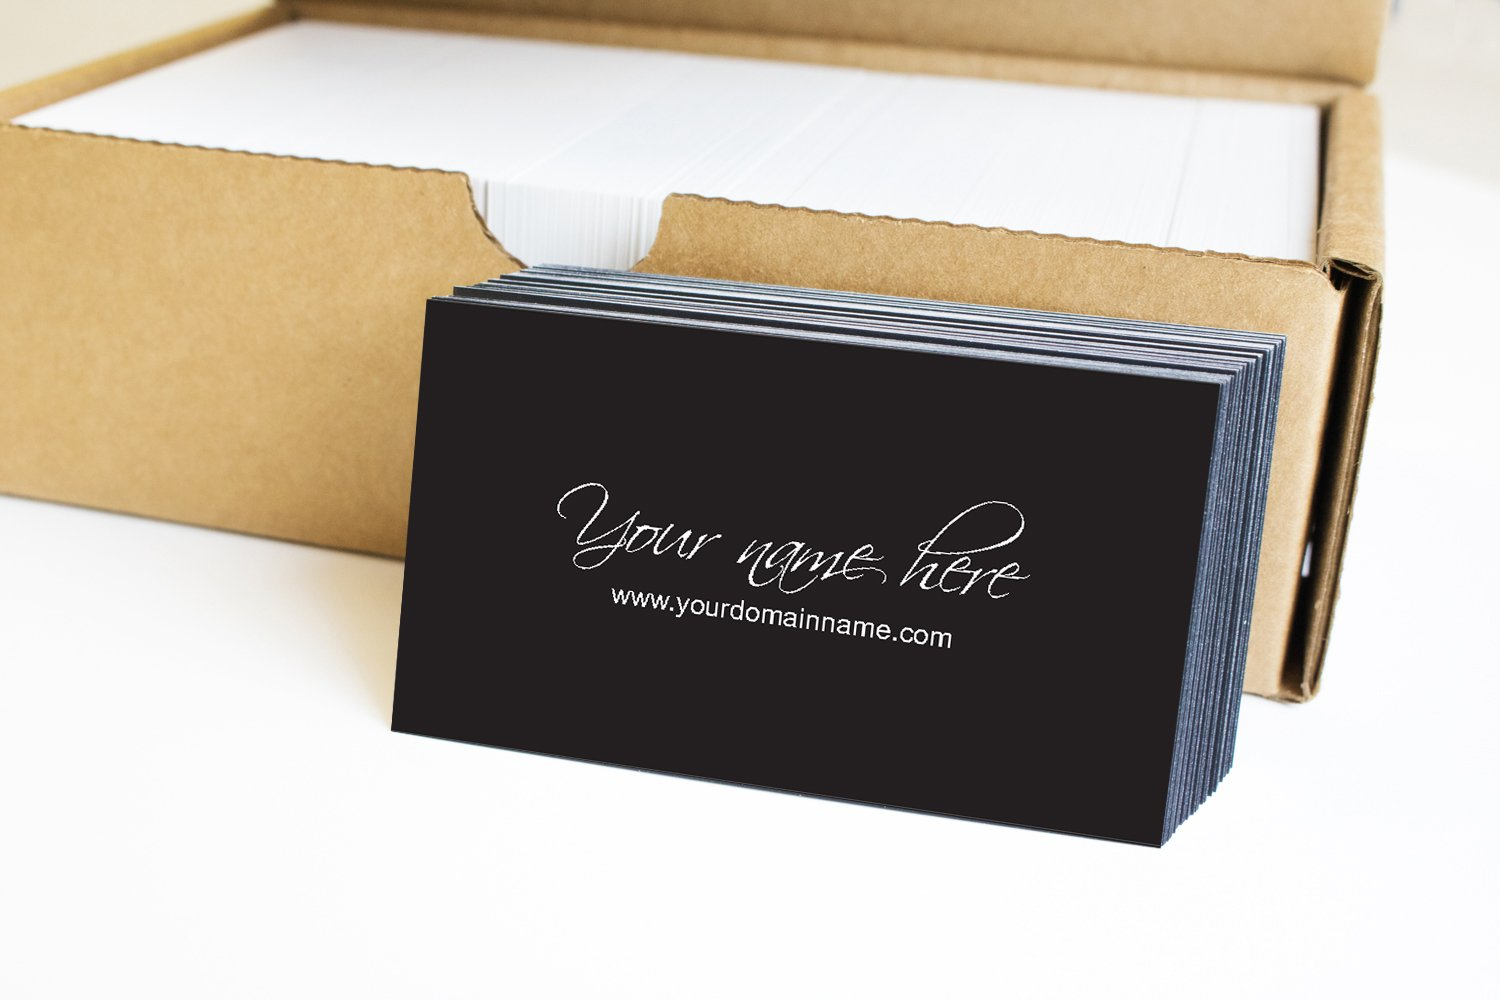 impactonlineprinting Simple Premium Business Cards 500 Full color - Script-Black front-White back (129 lbs. 350gsm-Thick paper)